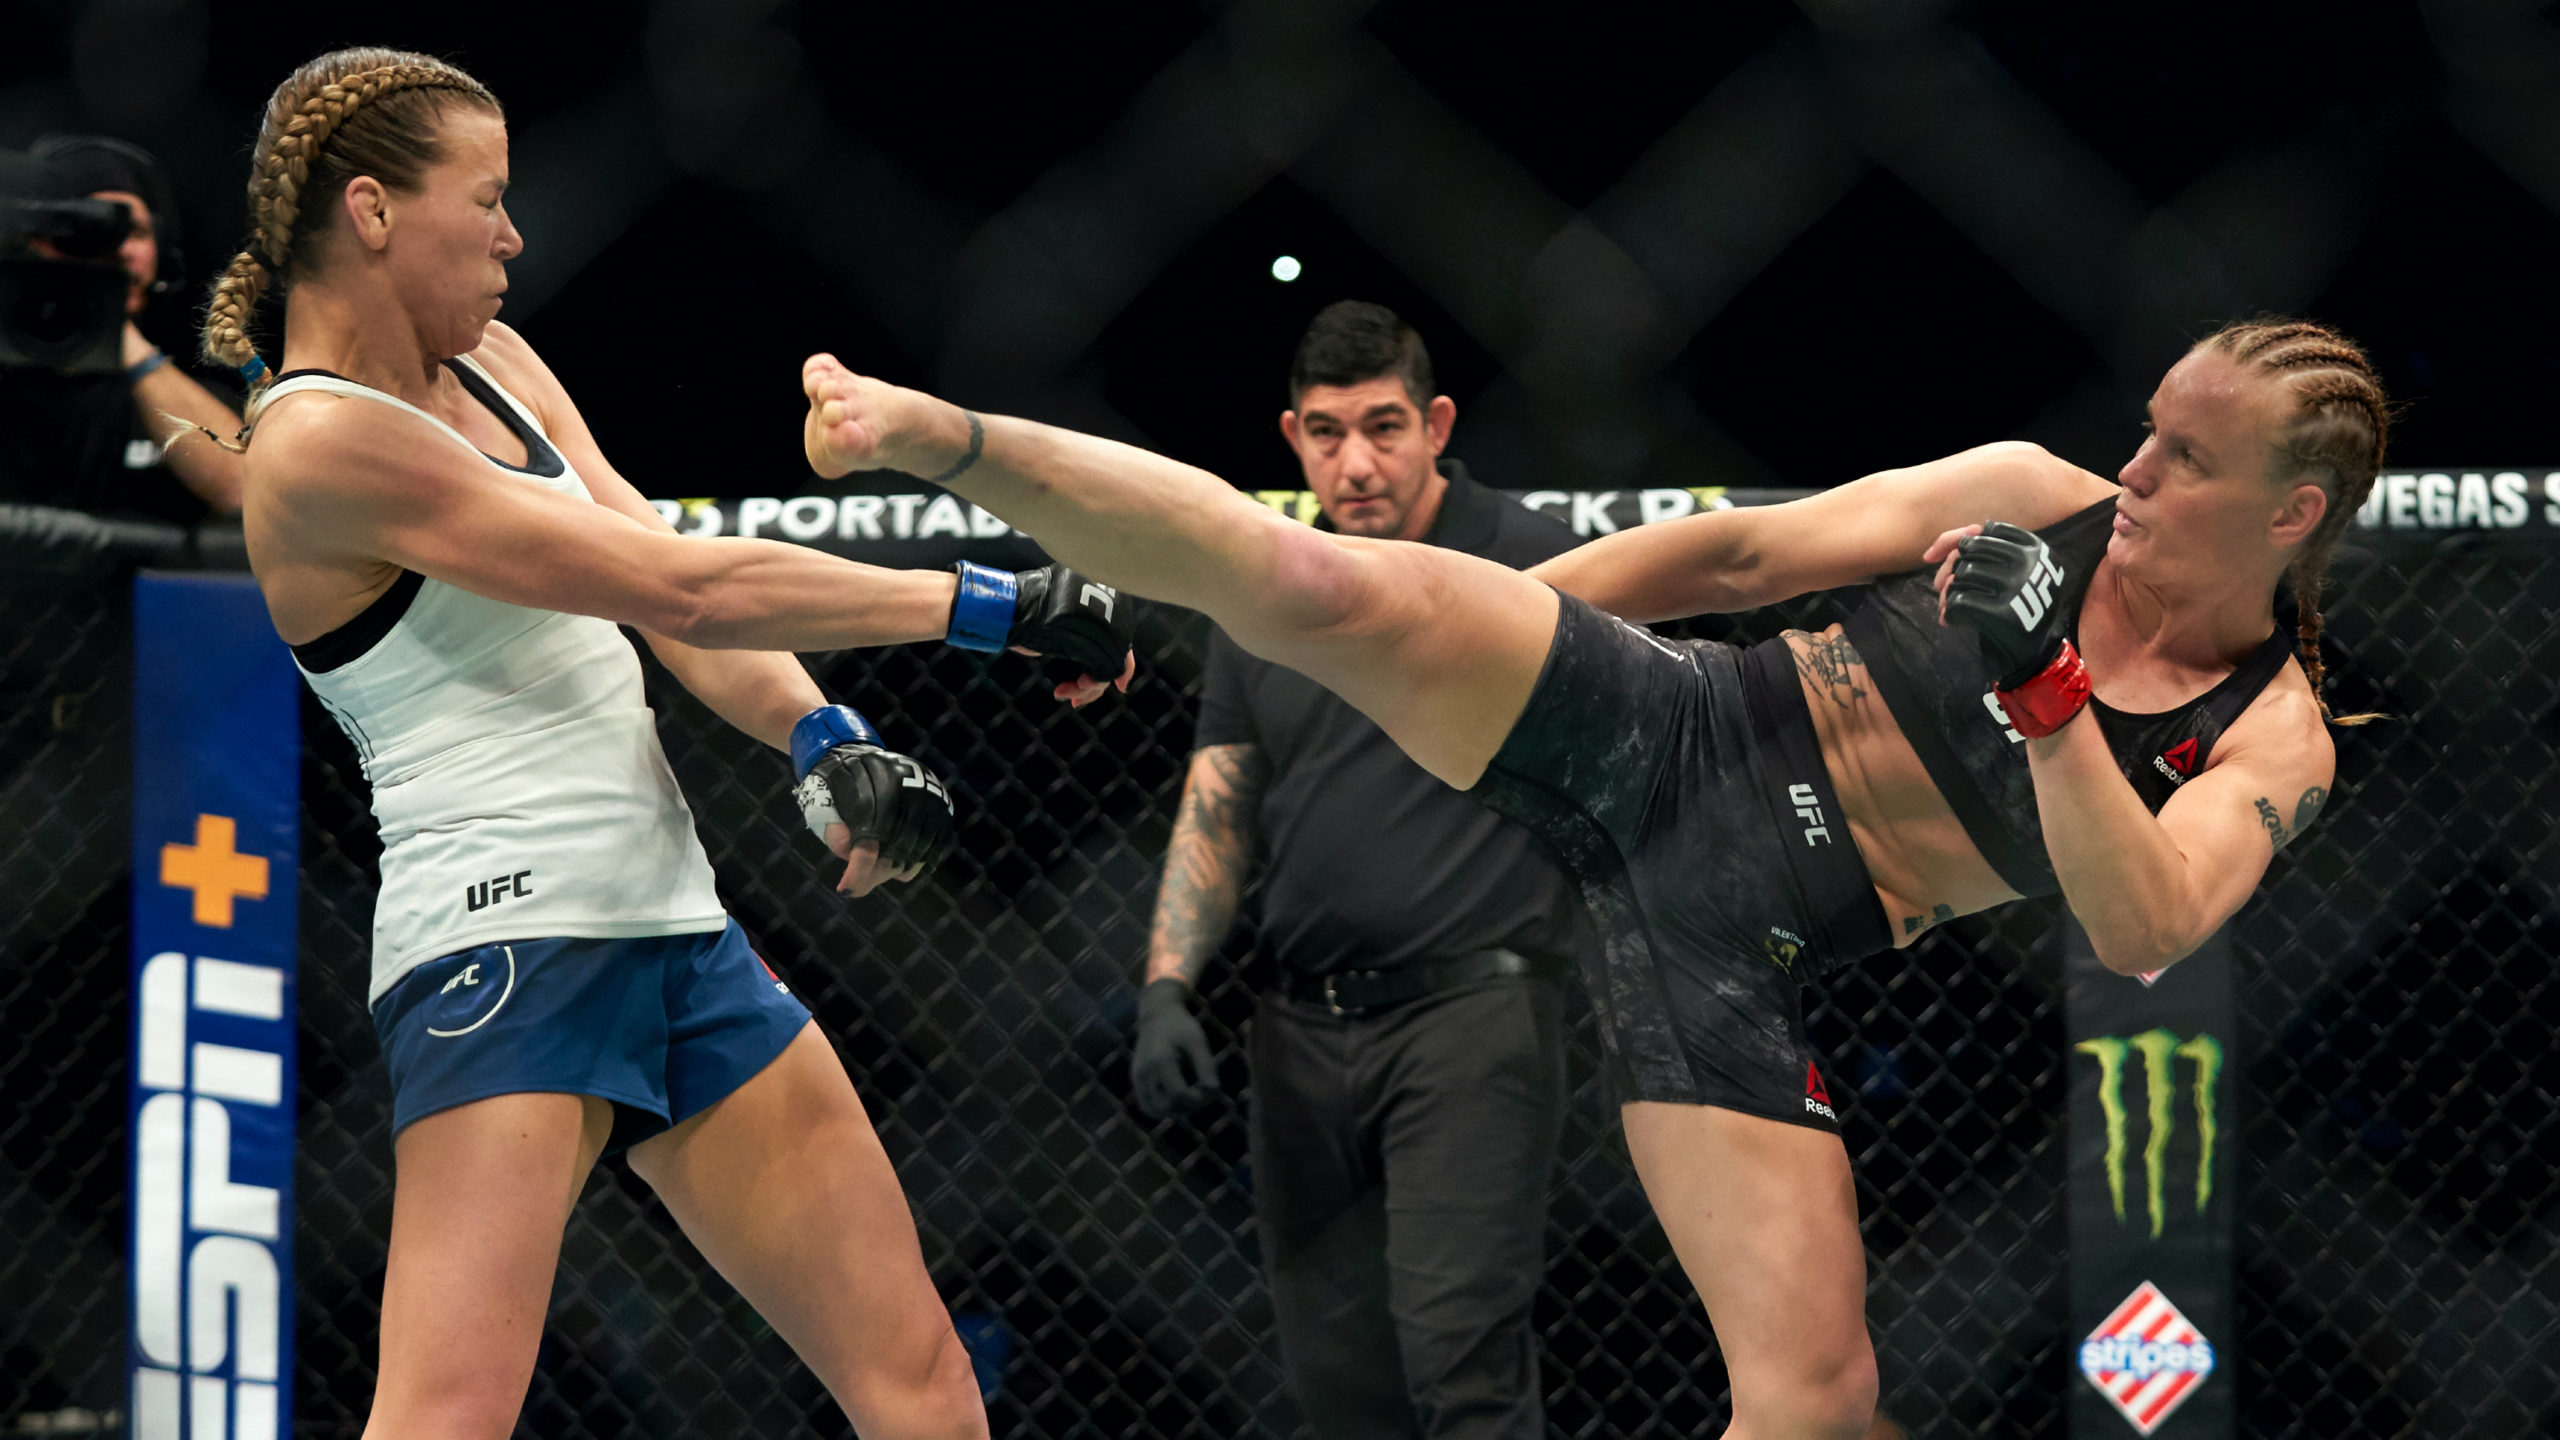 Betting odds explained ufc fighting sharkscope bovada betting